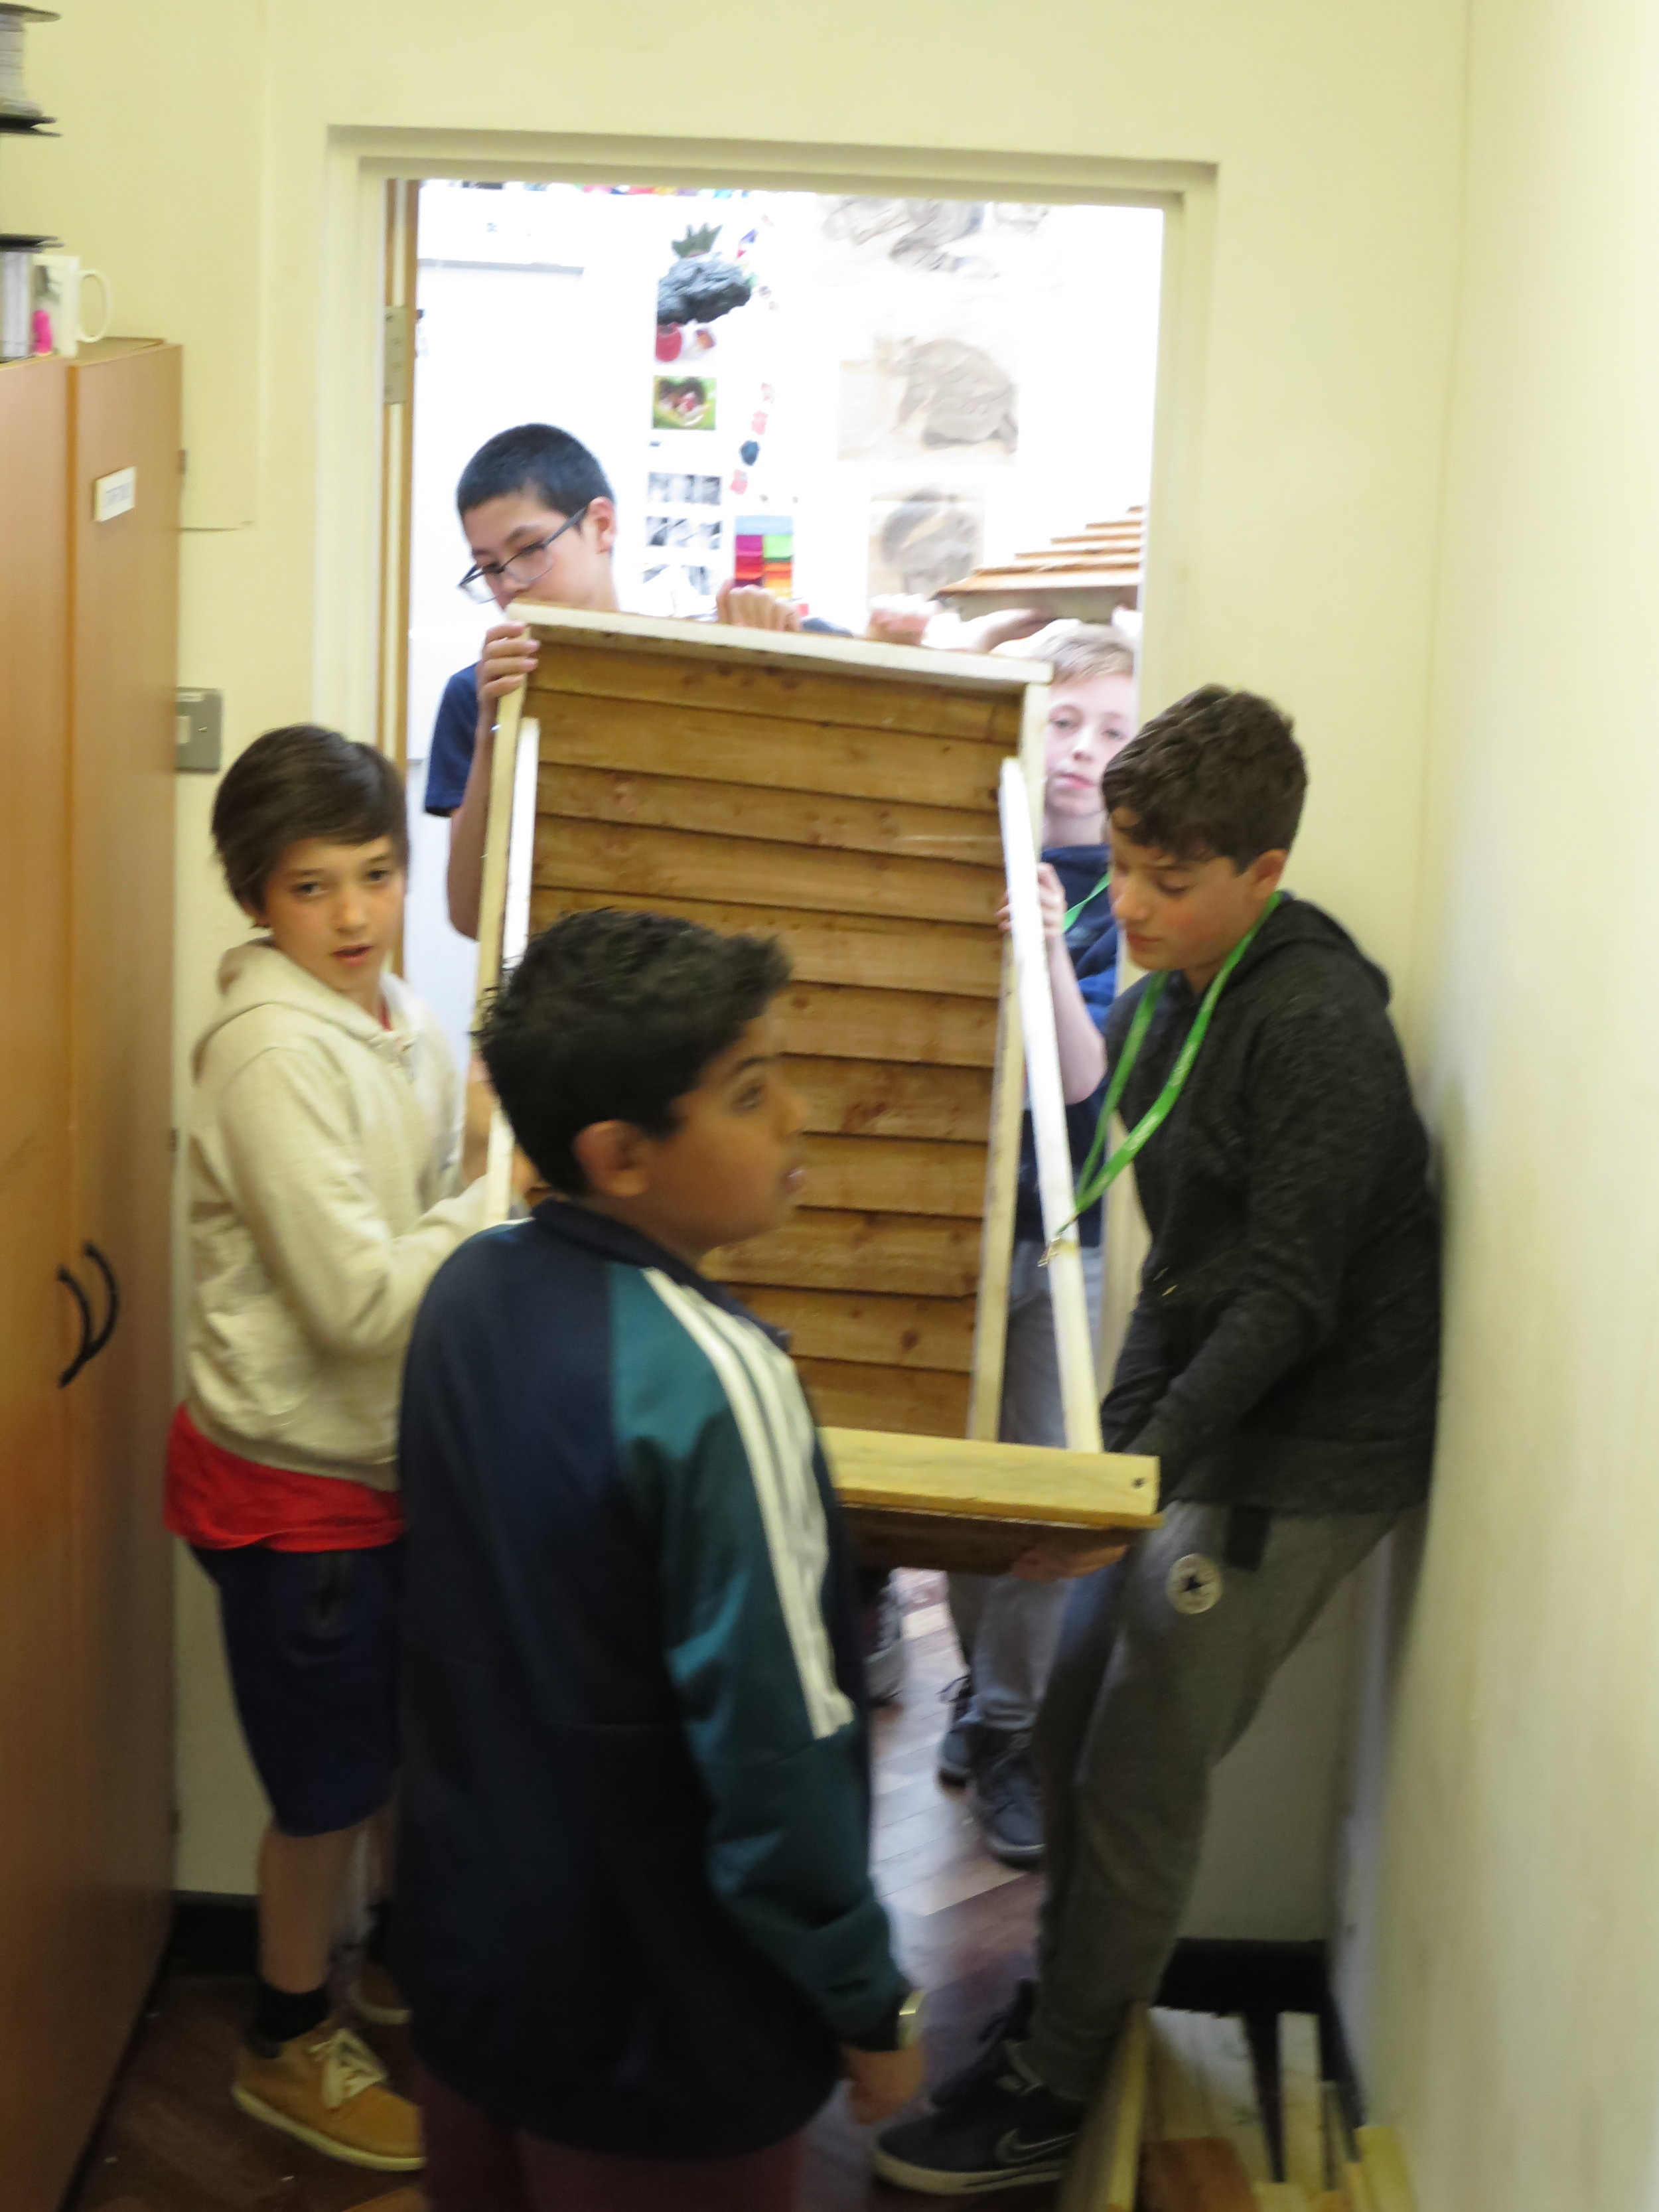 the panels had to fit through the classroom doors